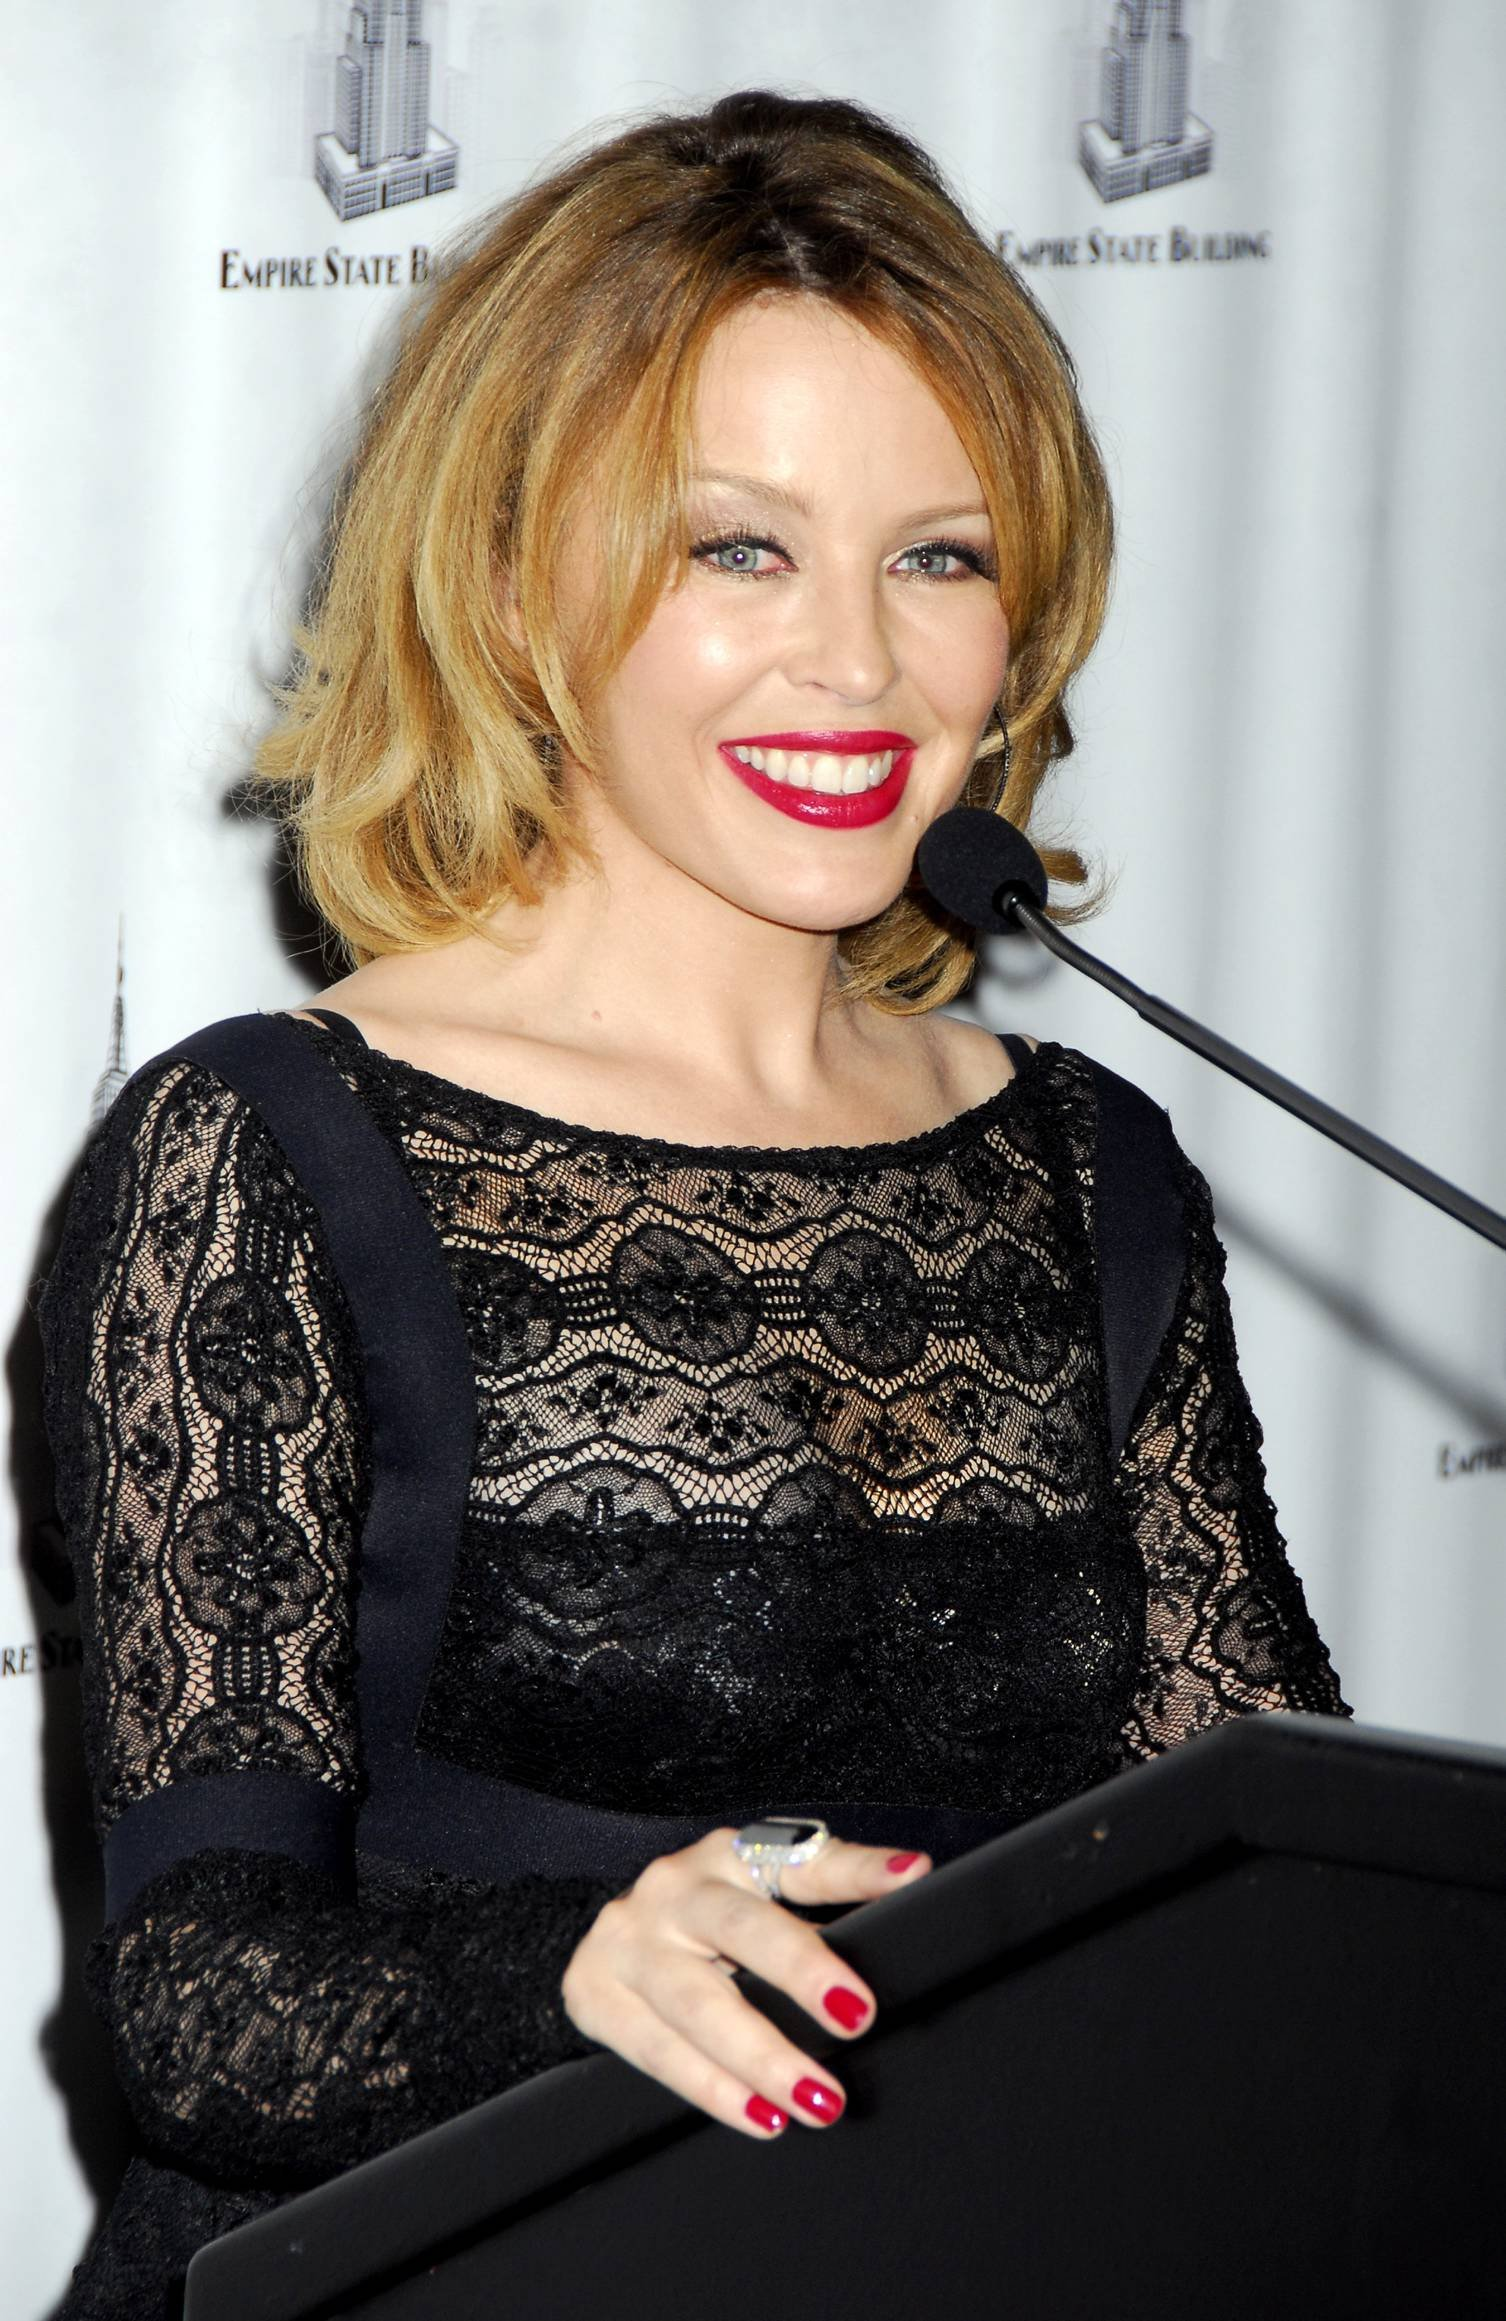 25834_Celebutopia-Kylie_Minogue_lights_The_Empire_State_Building-14_122_894lo.jpg